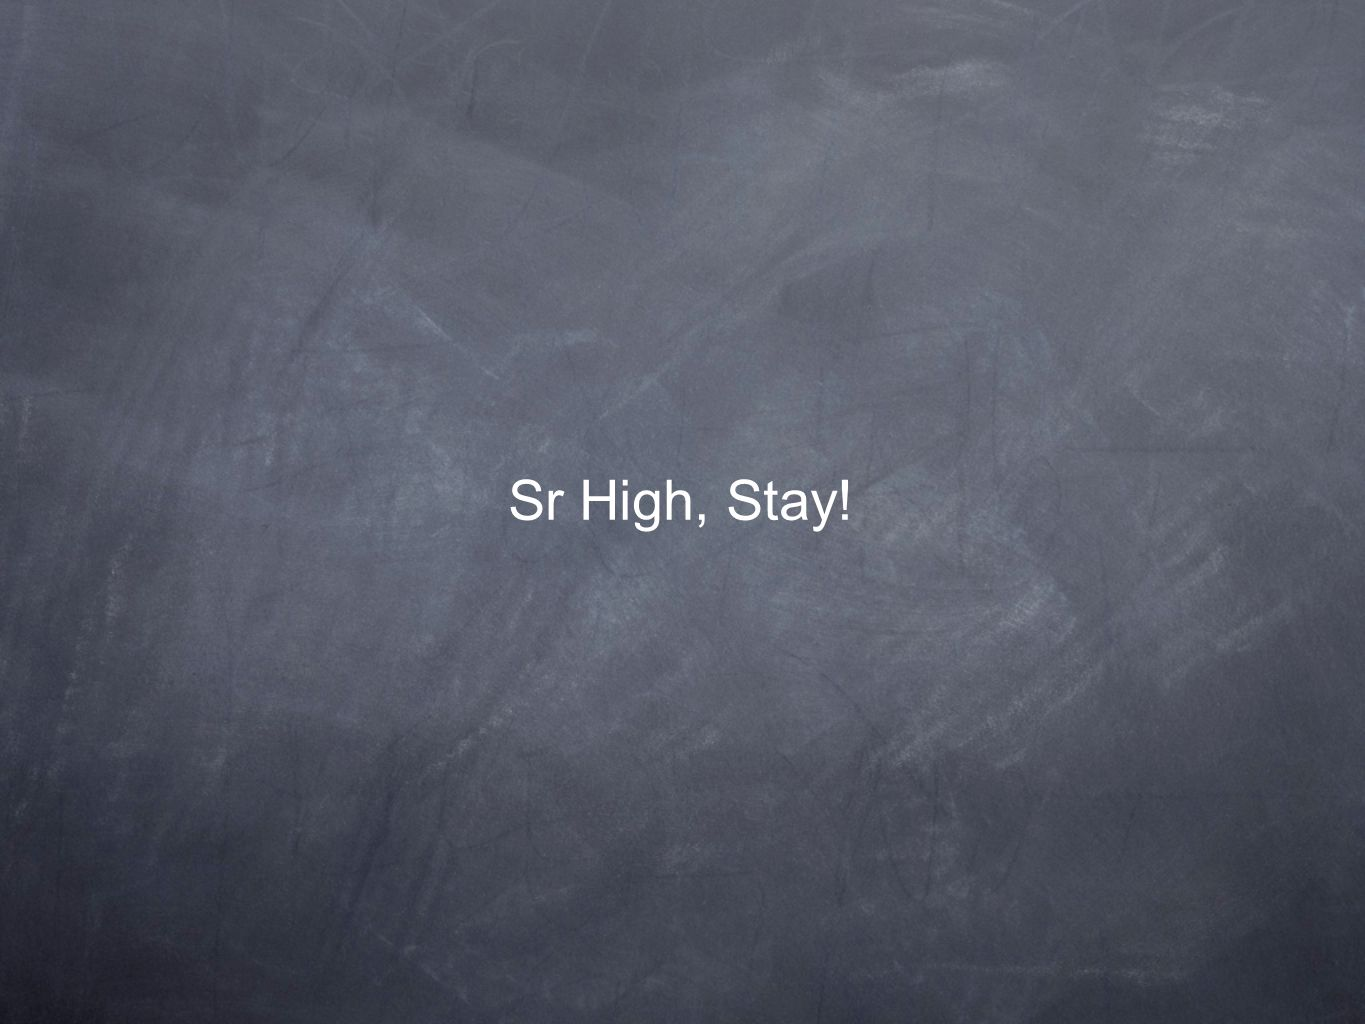 Sr High, Stay!